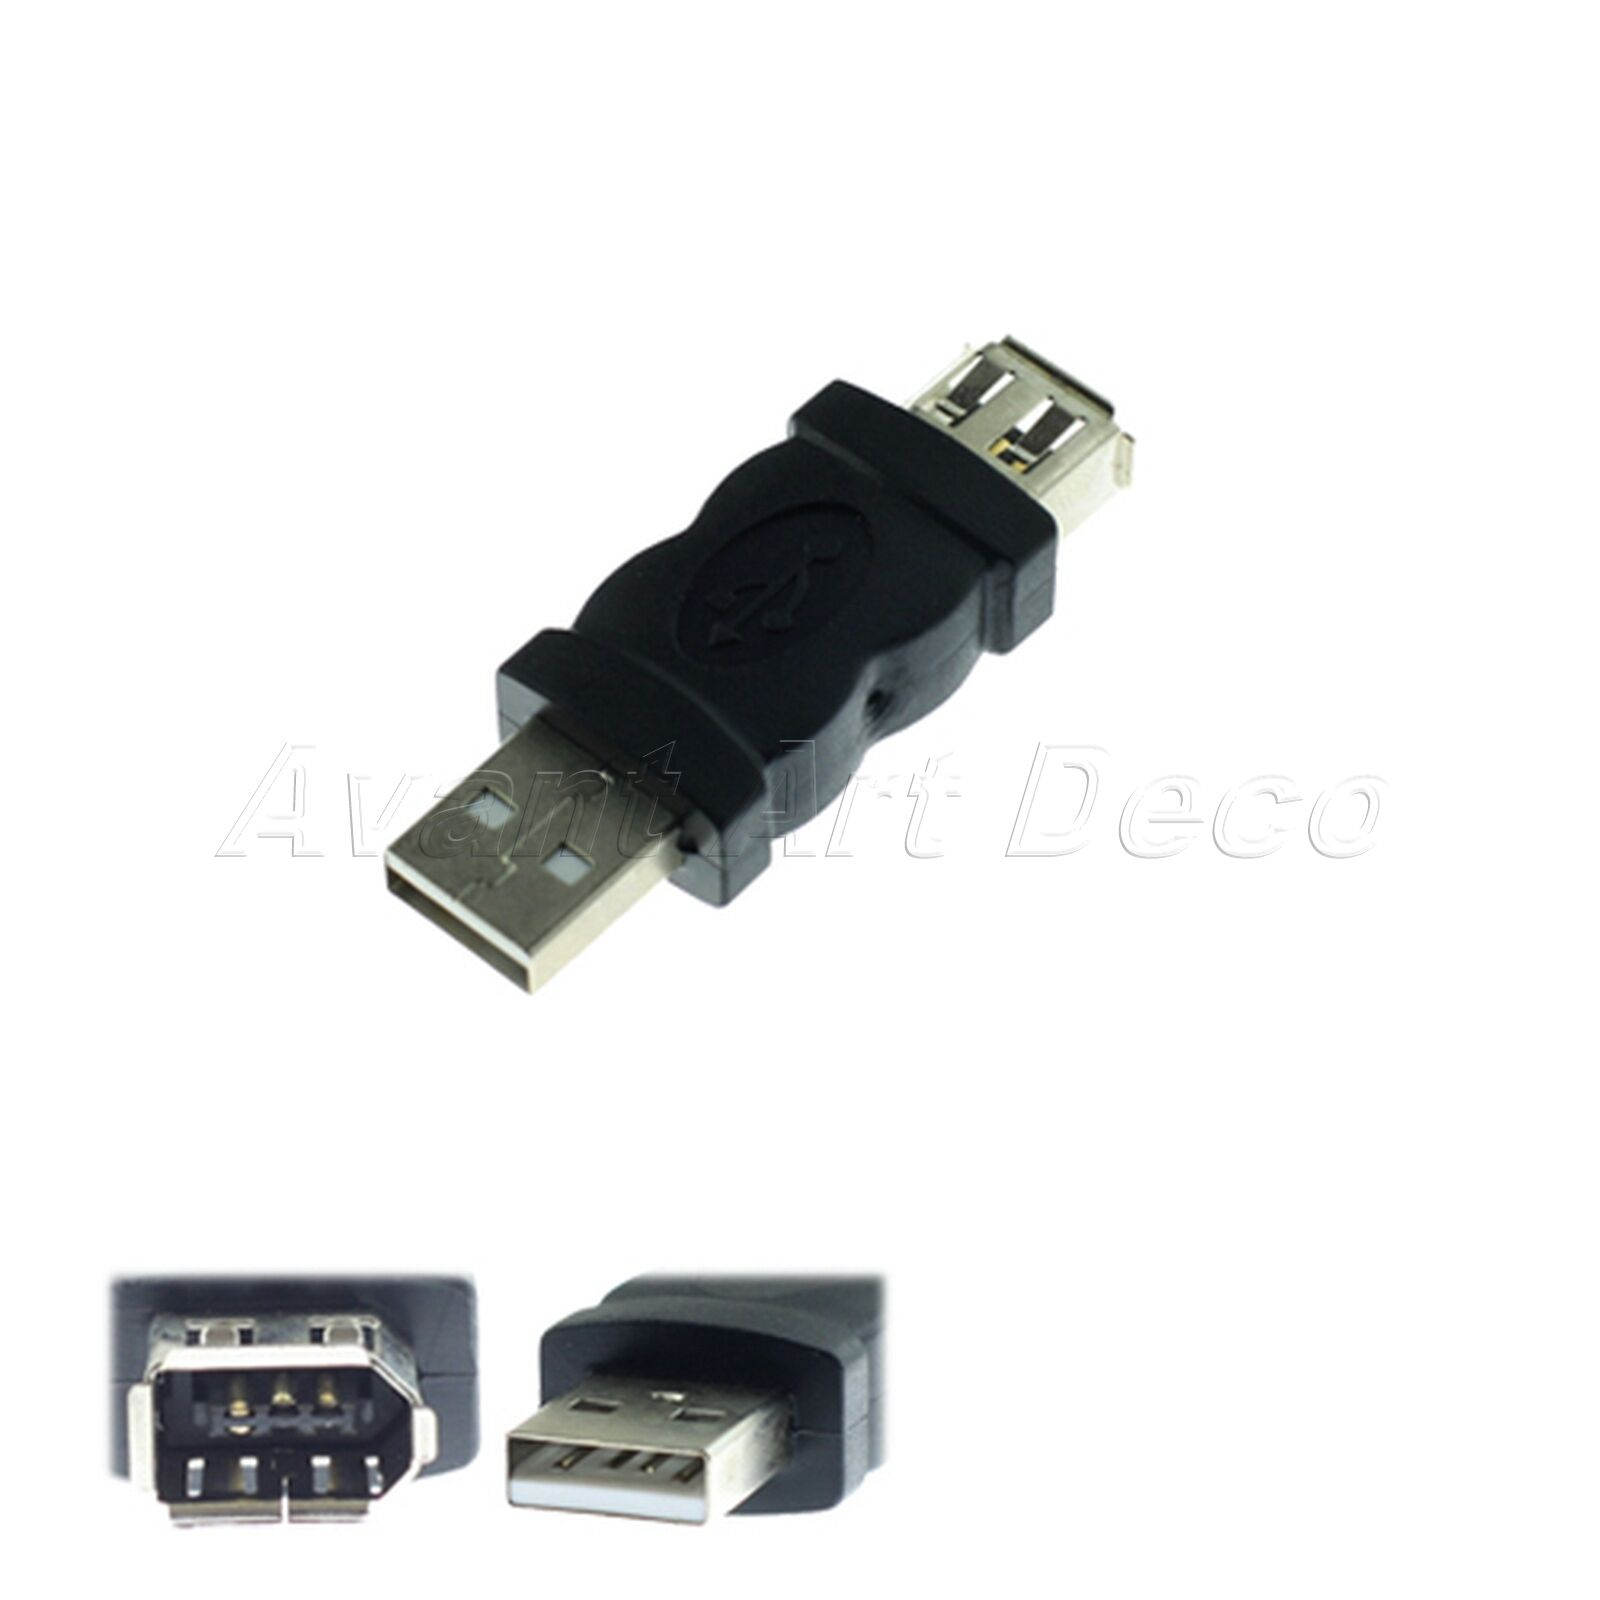 FireWire Cables - Adapters , Computer Cables - Connectors , Men